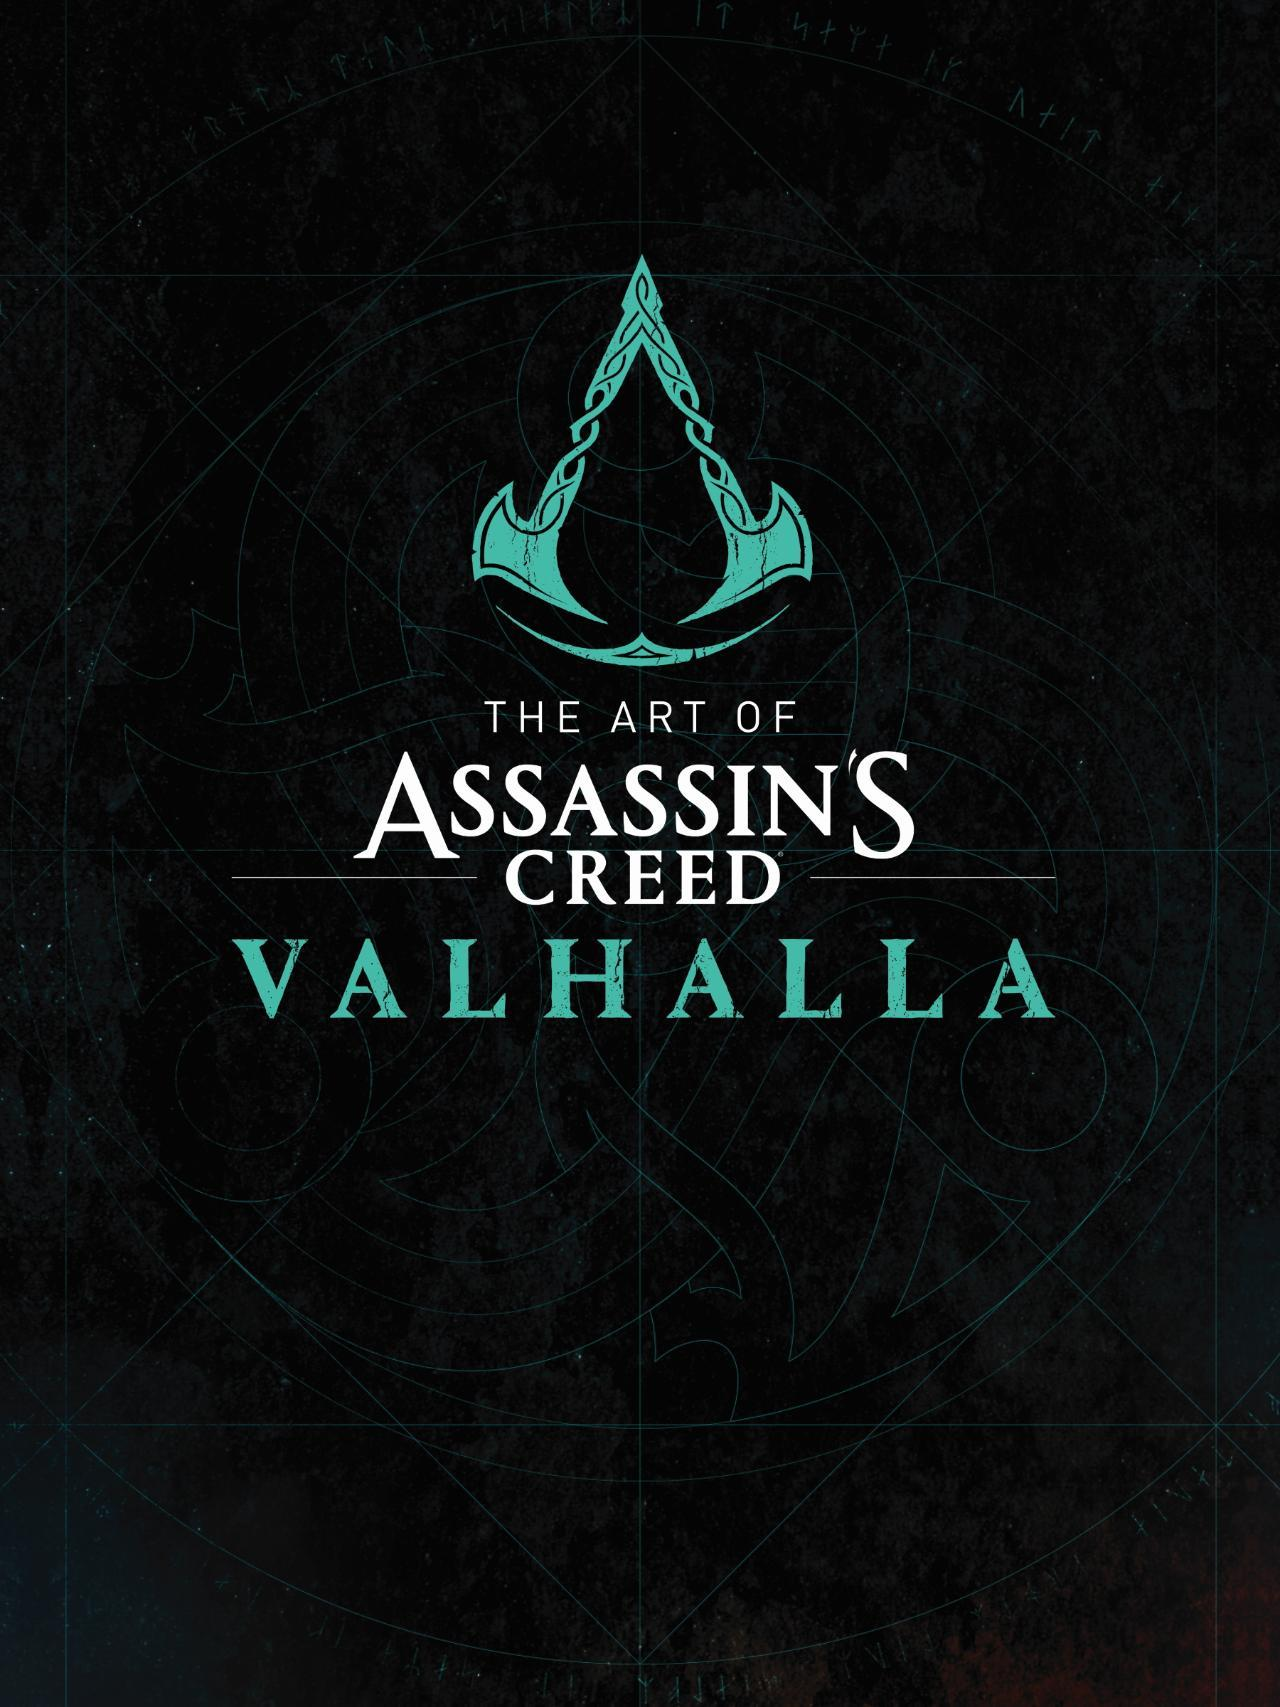 a arte de assassins creed valhalla capa